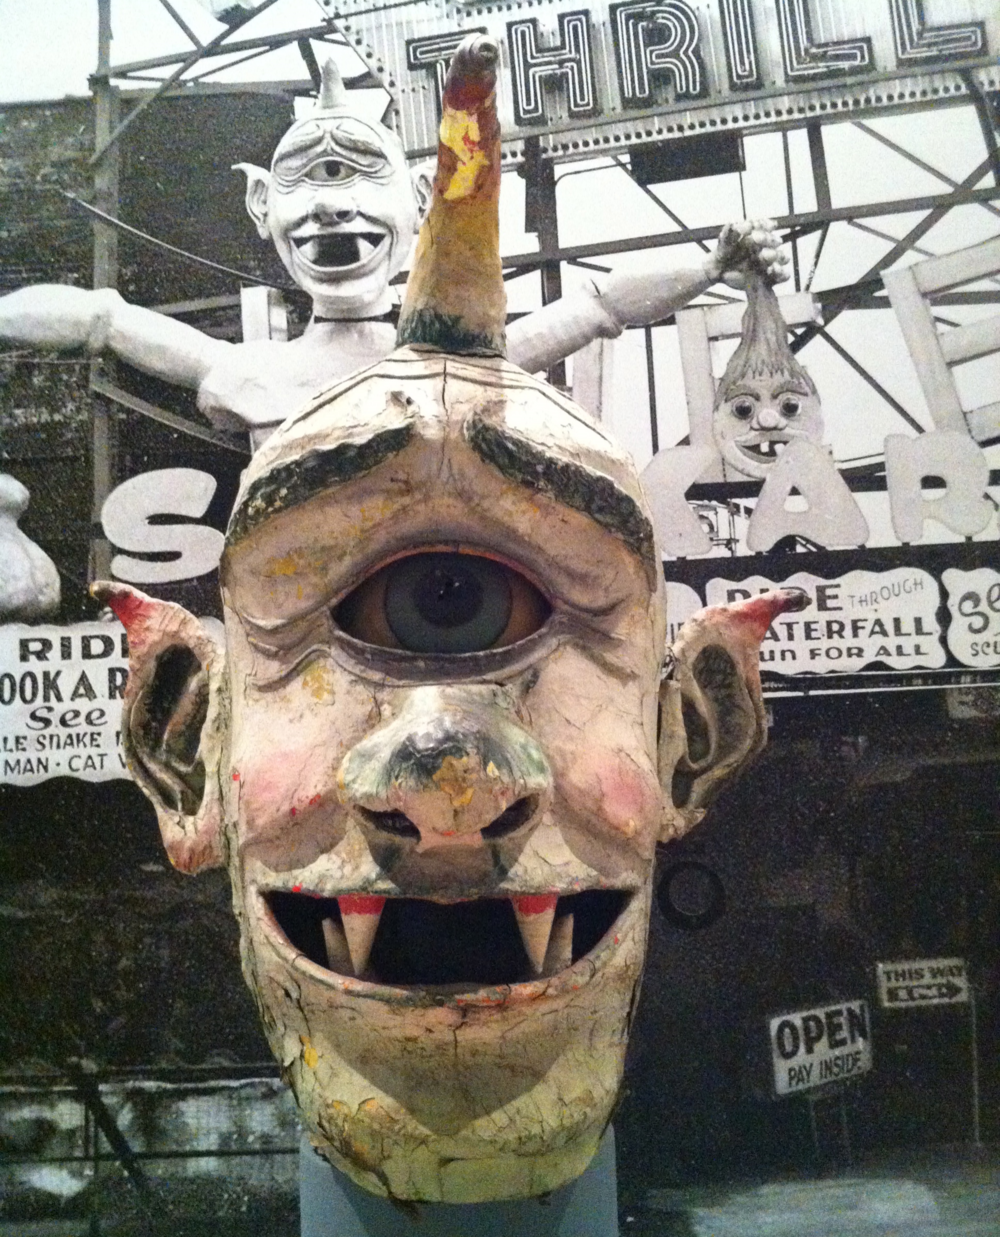 Nicknamed Cy, this sculpted Cyclops head hung above the Spook-A-Rama in the 1950s in Coney Island.